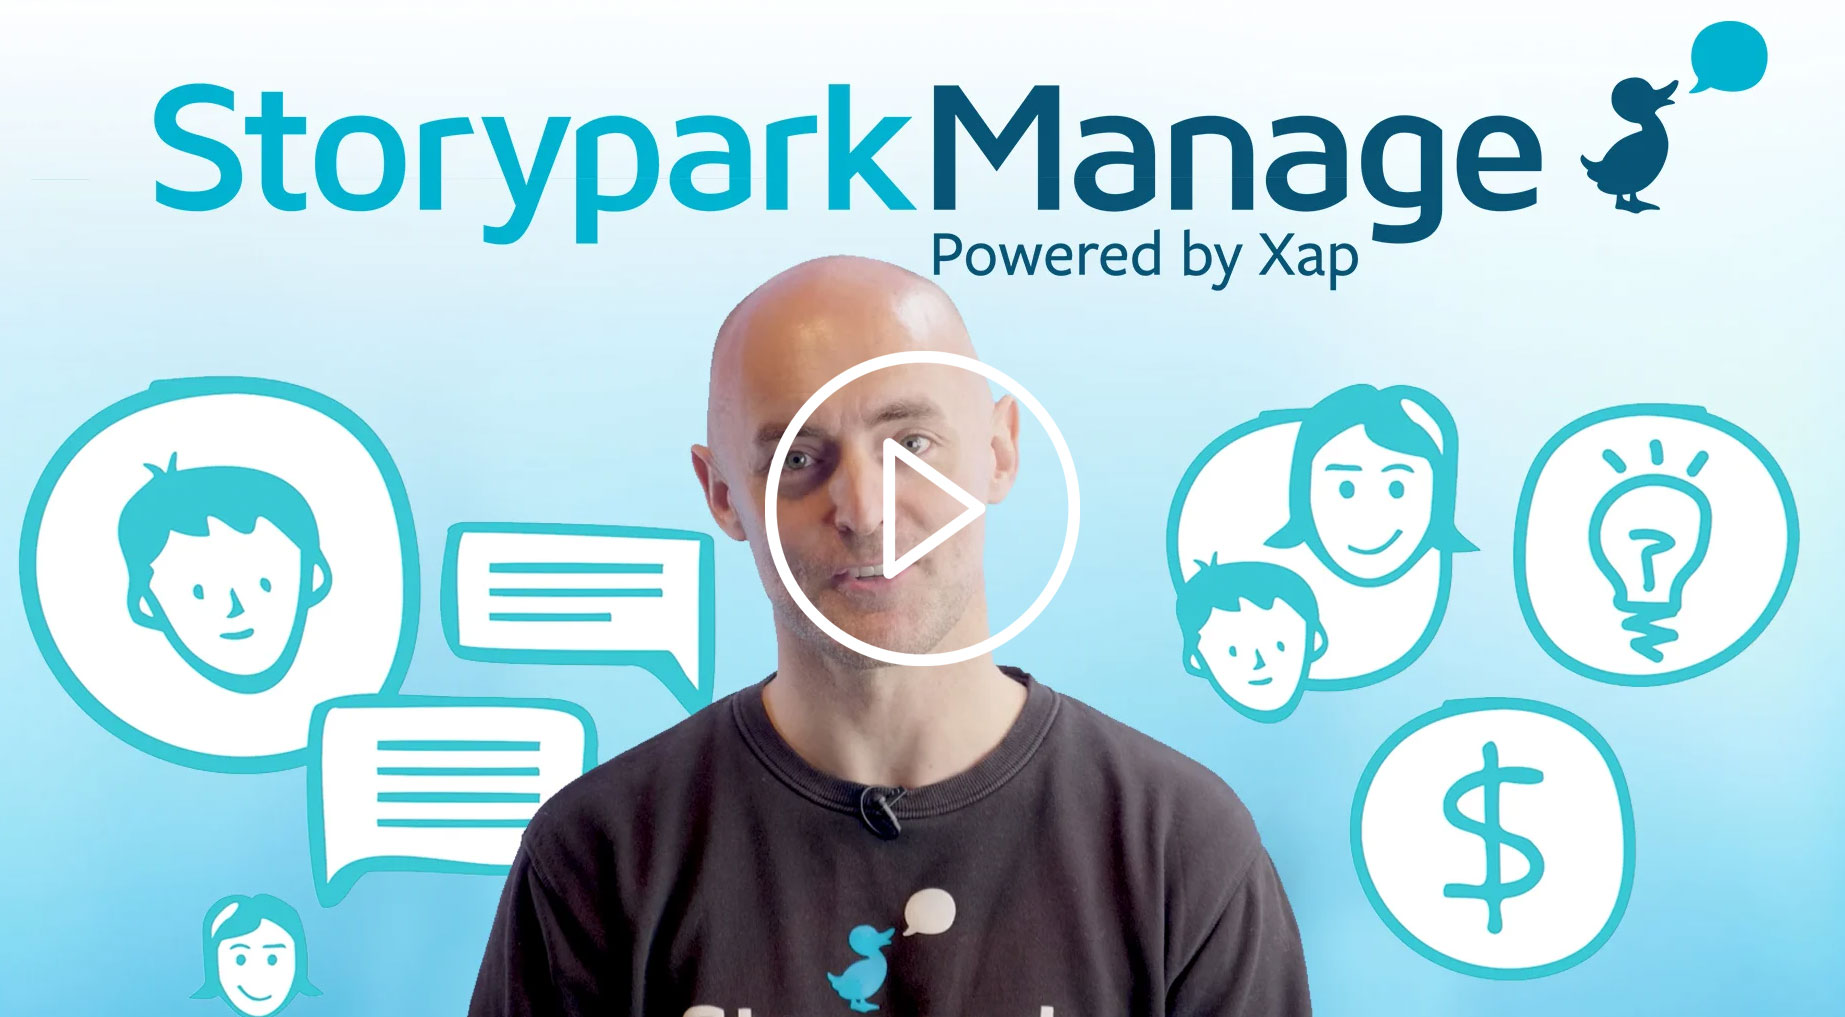 Storypark Manage video with Peter Dixon screenshot